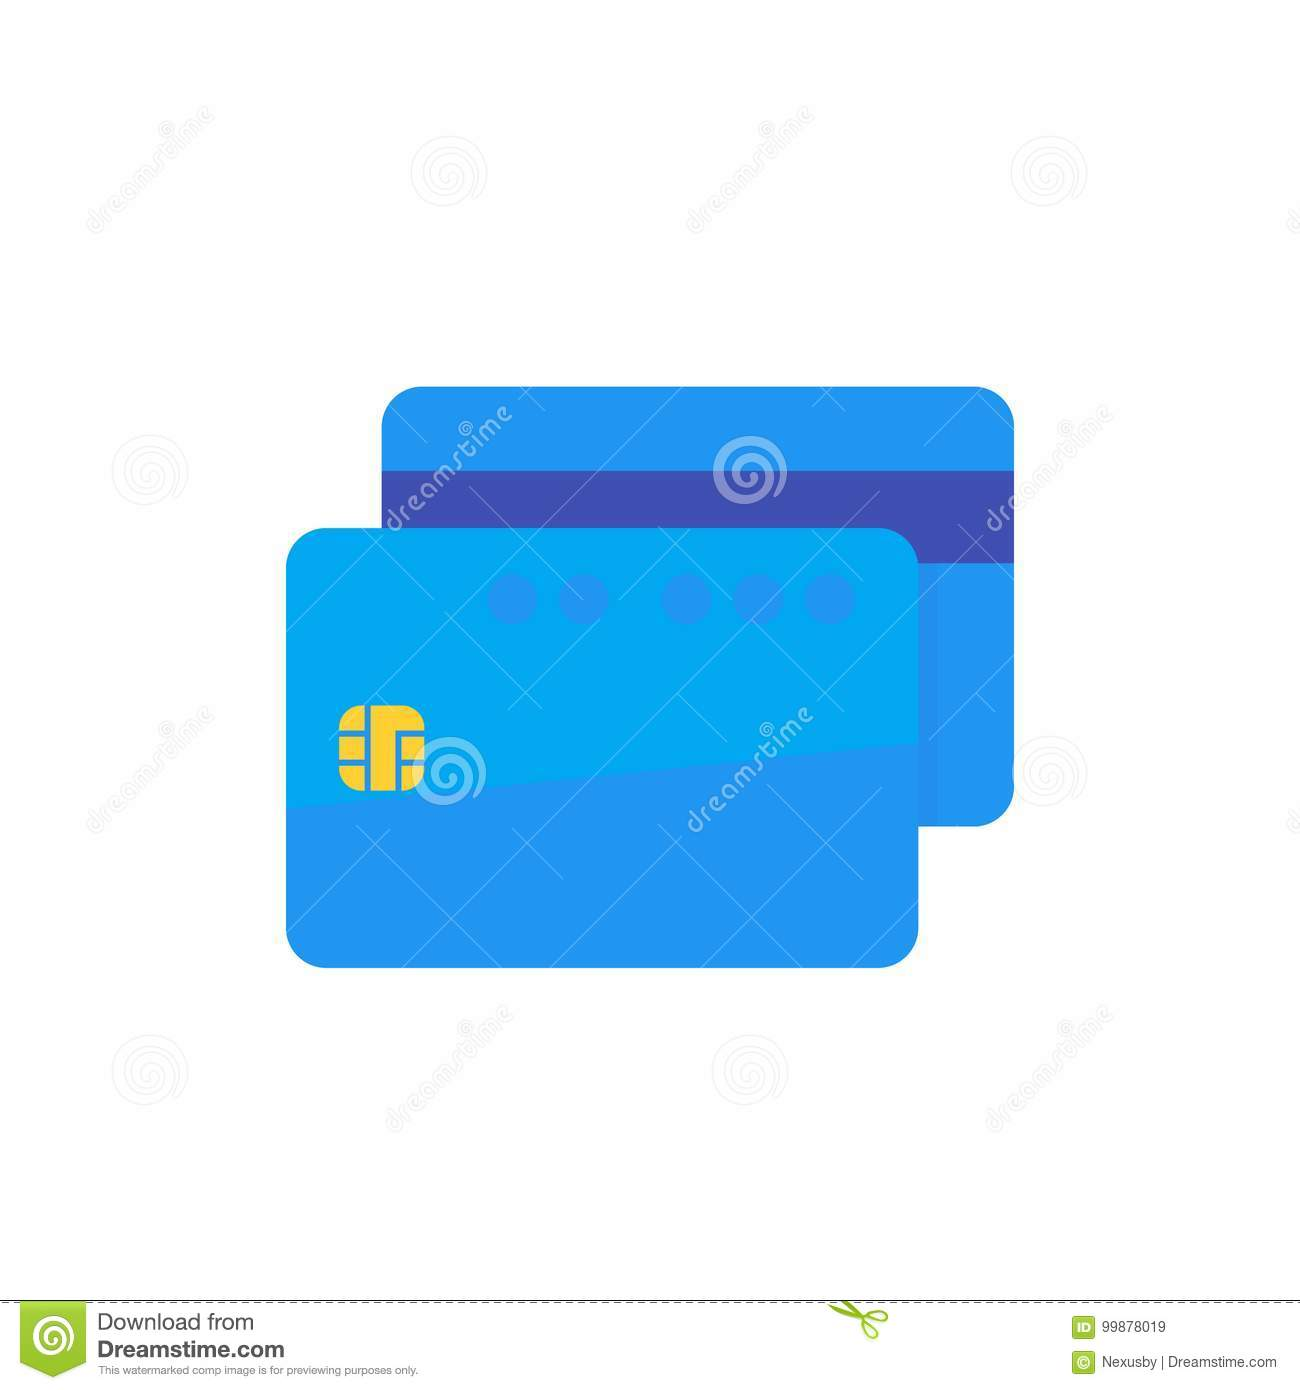 Where to quickly issue a credit card without reference 80